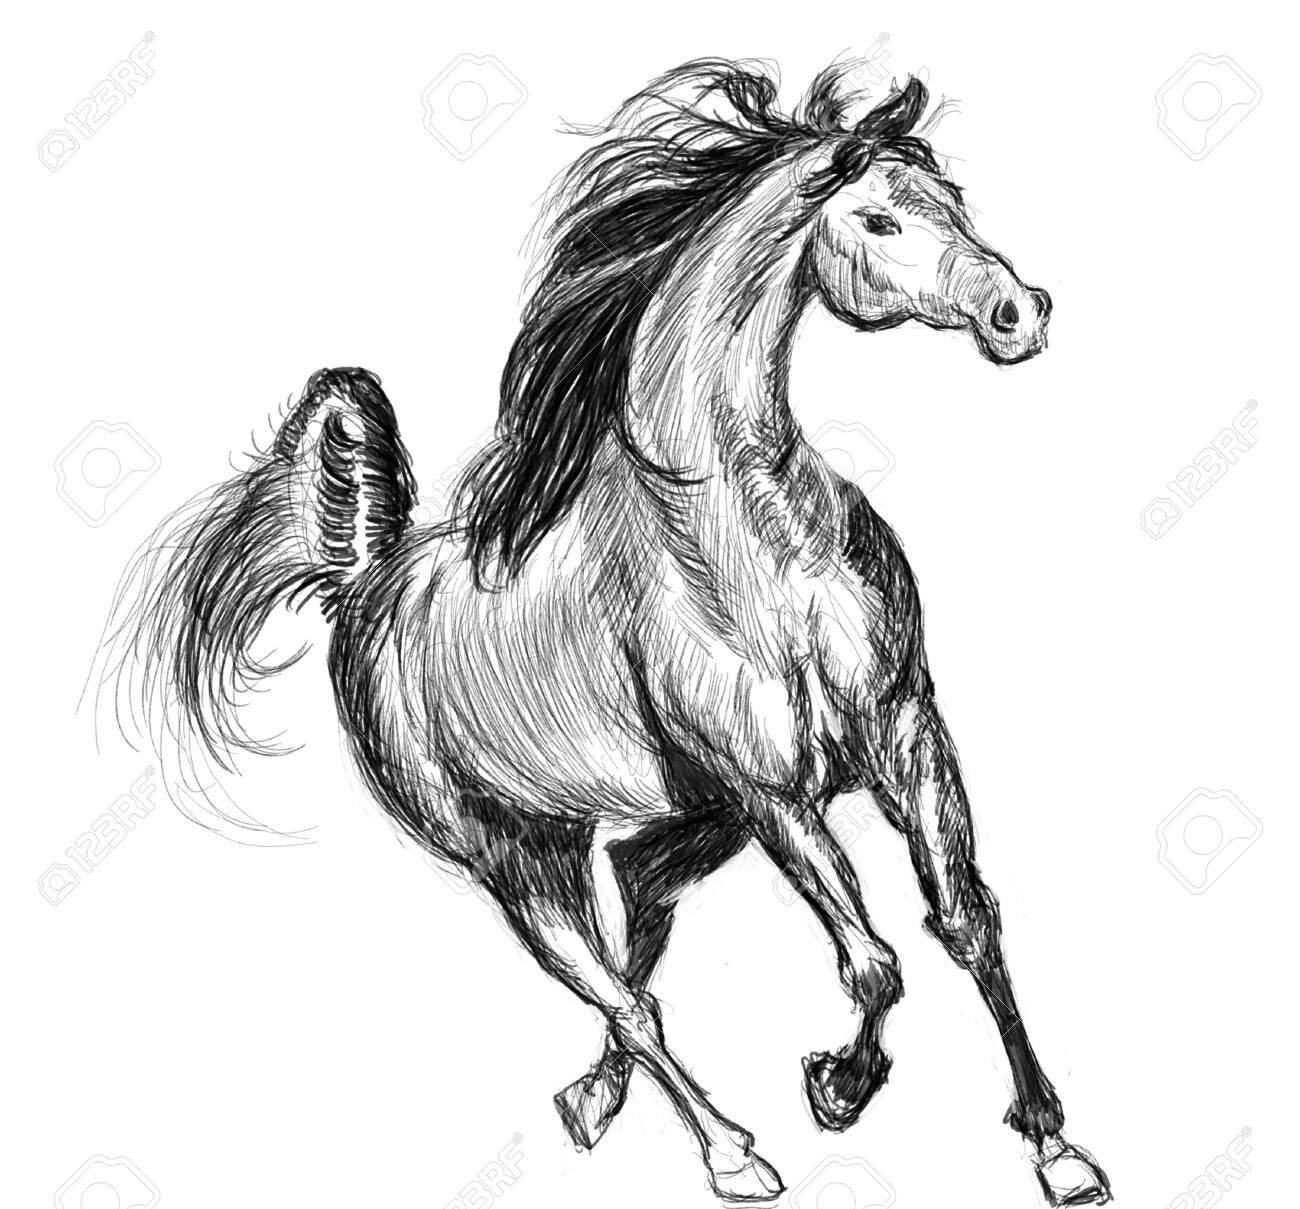 Horse Hand Drawn Illustration Art Design Wall Inspiration Stock Photo Picture And Royalty Free Image Image 135362248